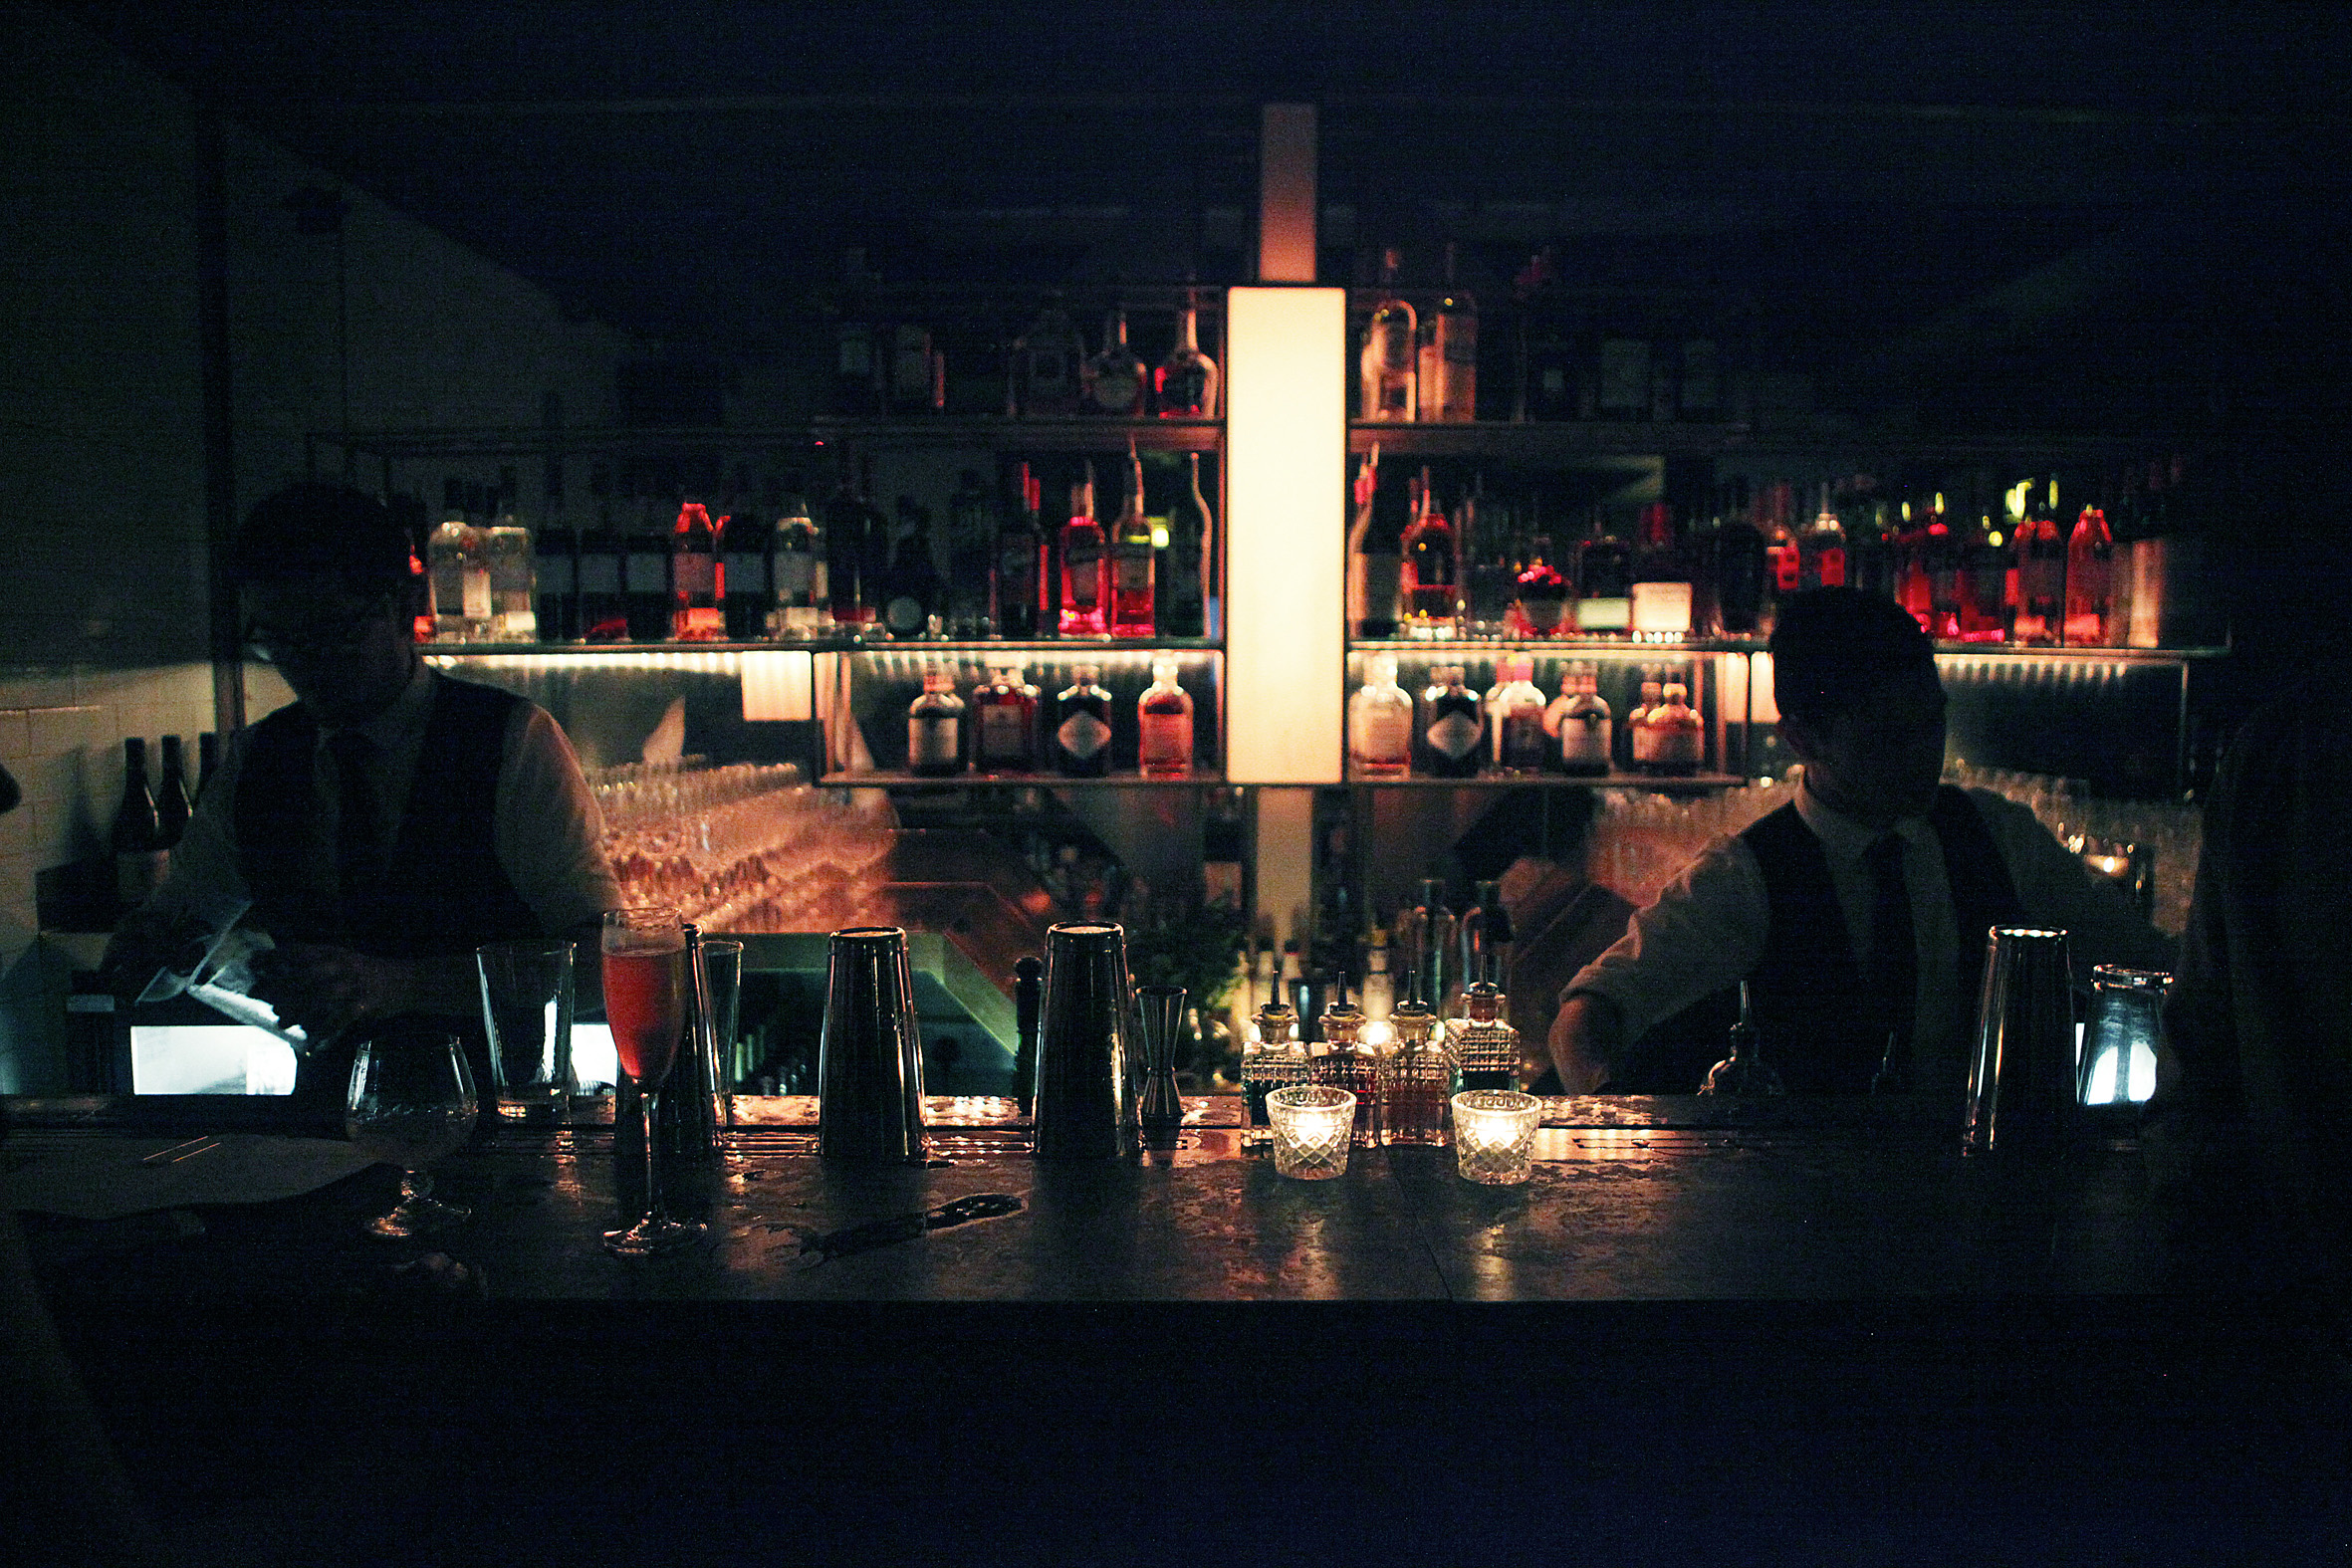 The Bermondsey Arts Club & Cocktail Bar